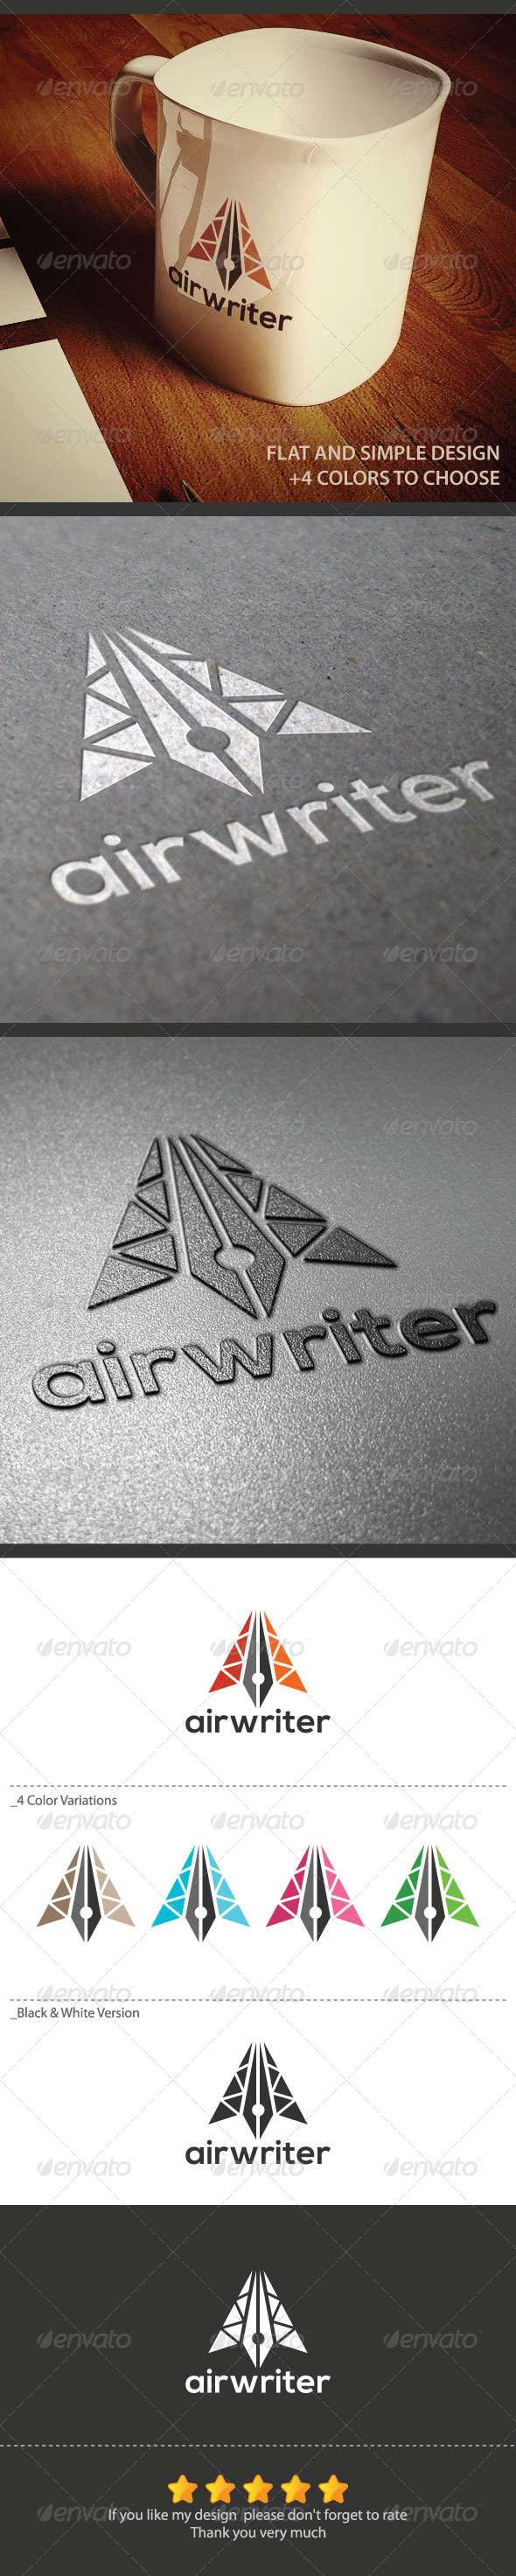 Airwriter Logo - Objects Logo Templates